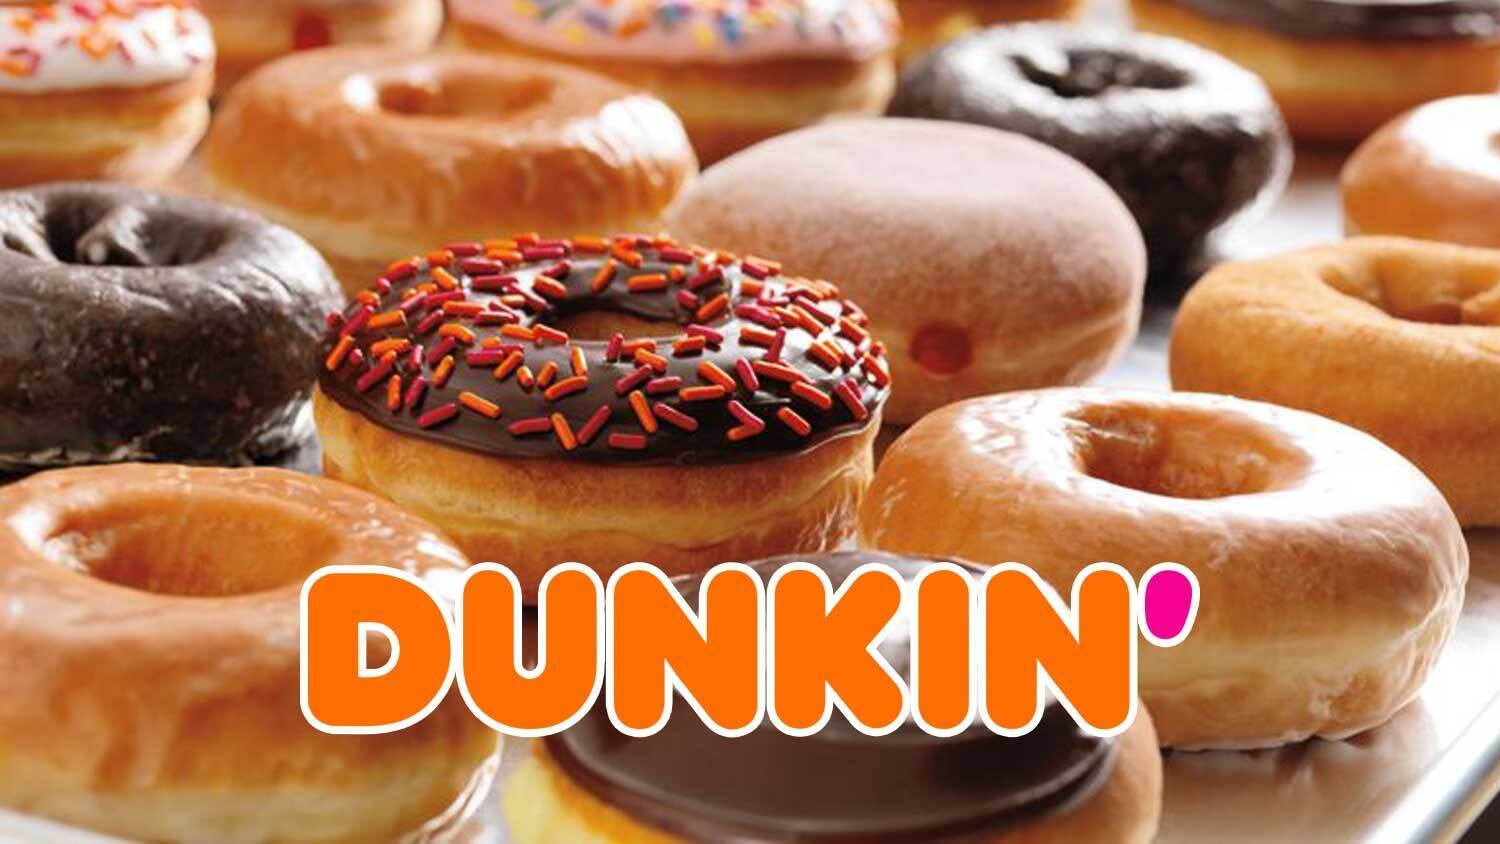 Dunkin' Confirms It's Working On a Vegan Donut